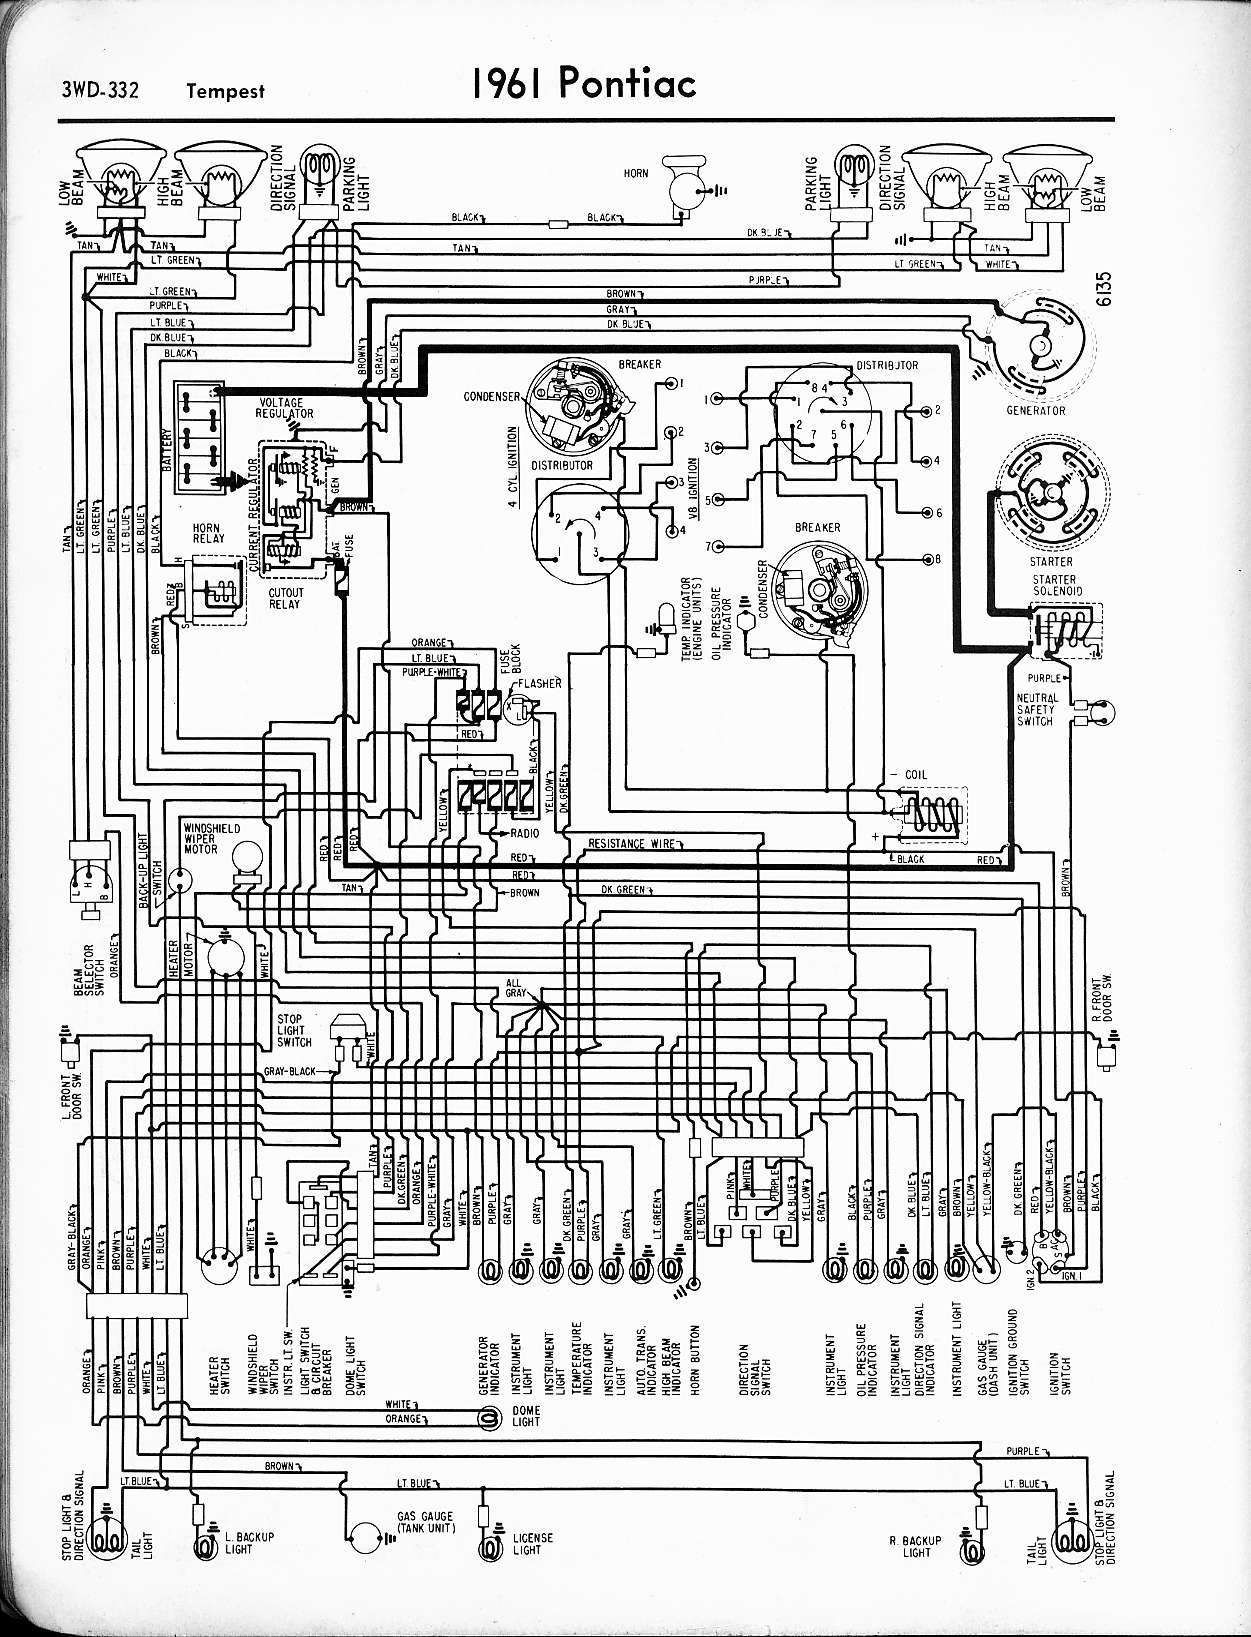 hight resolution of pontiac wiring 1957 1965 wiring diagrams of 1961 pontiac tempest